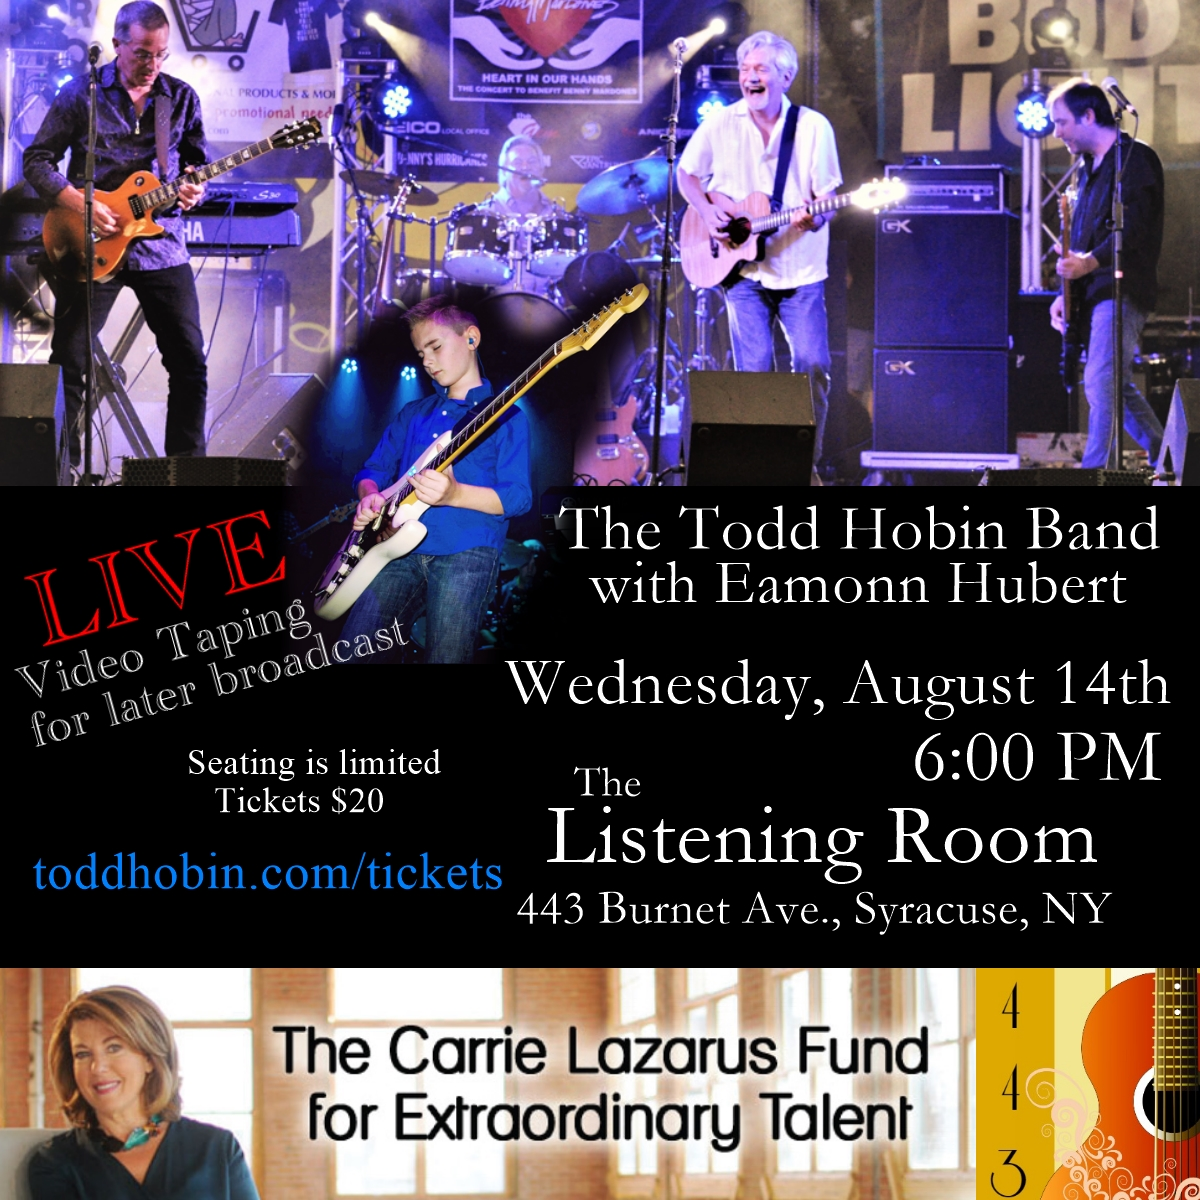 Eamonn Hubert will be performing with the Todd Hobin Band.